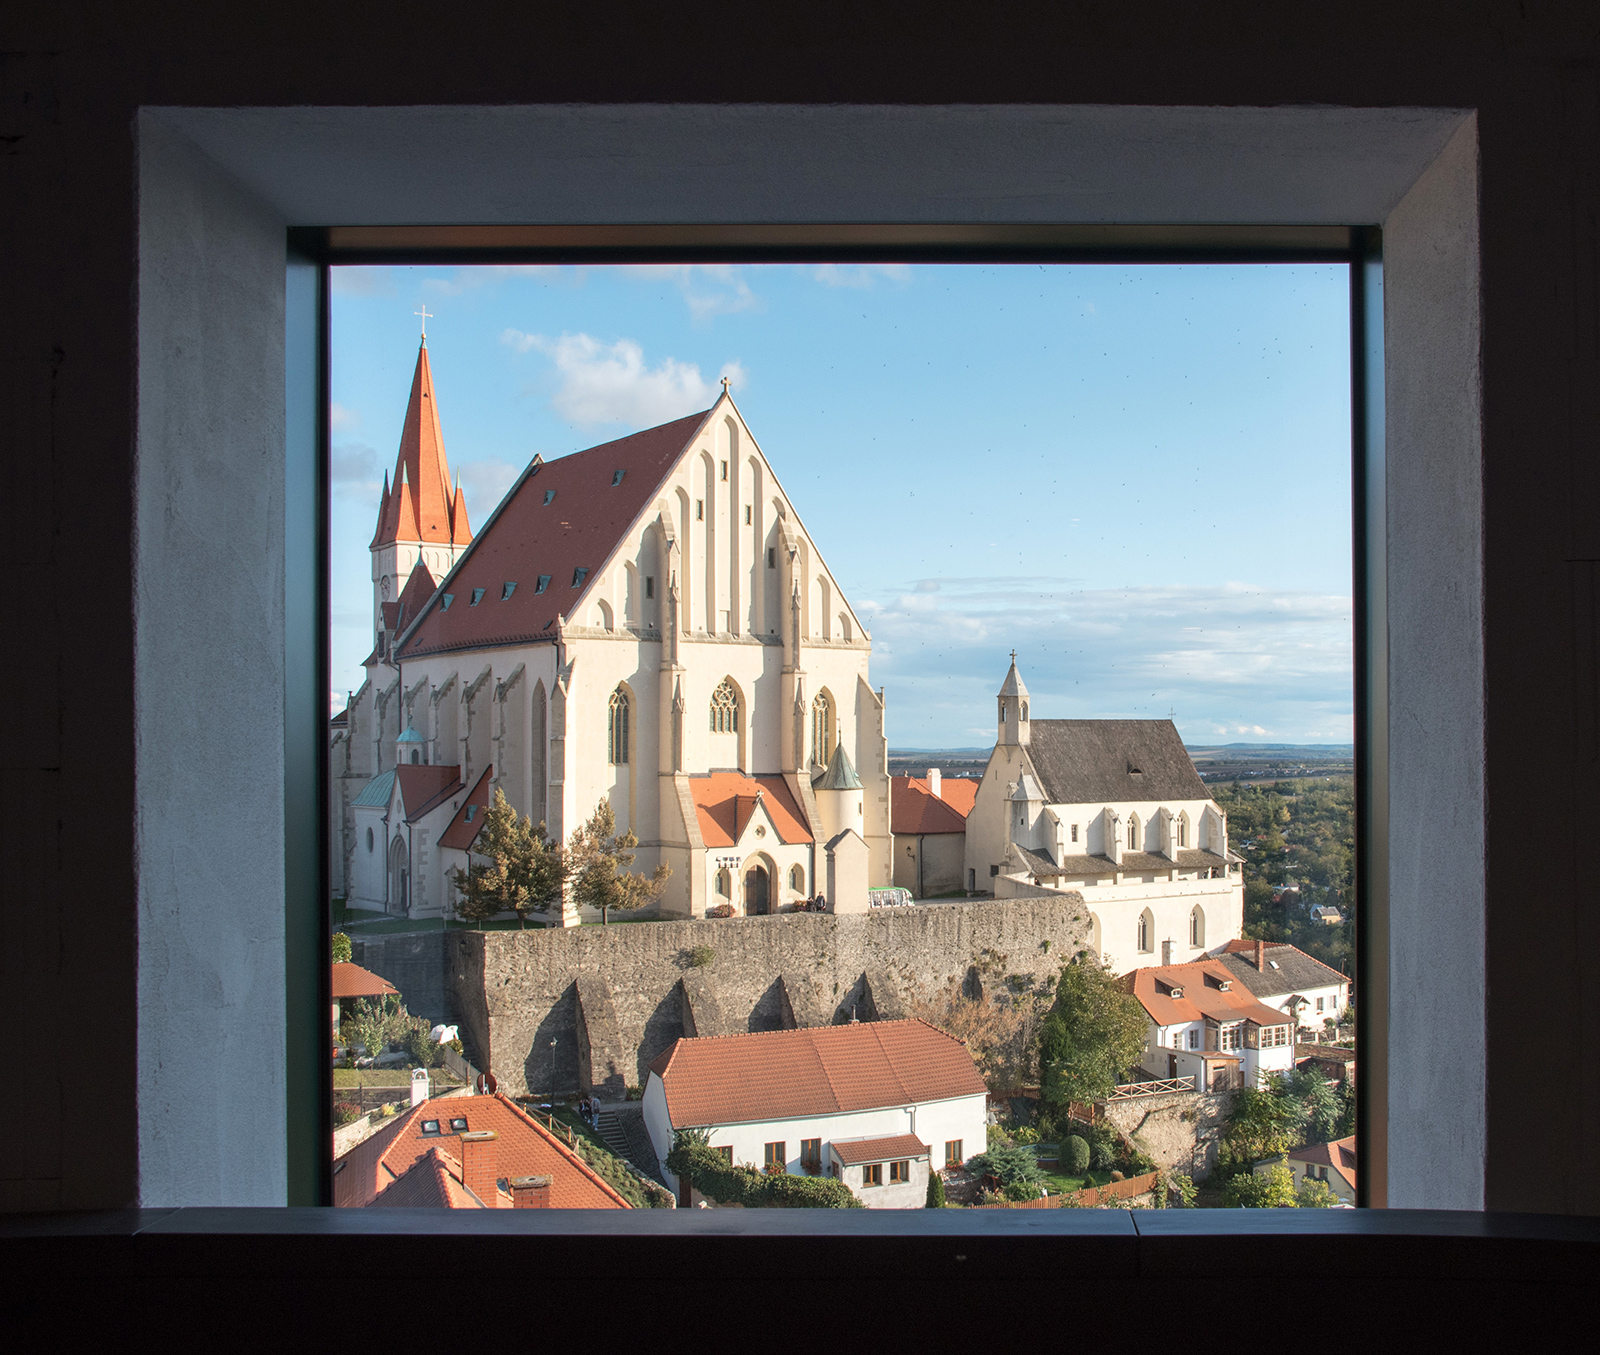 a winery with views of the city in Znojmo